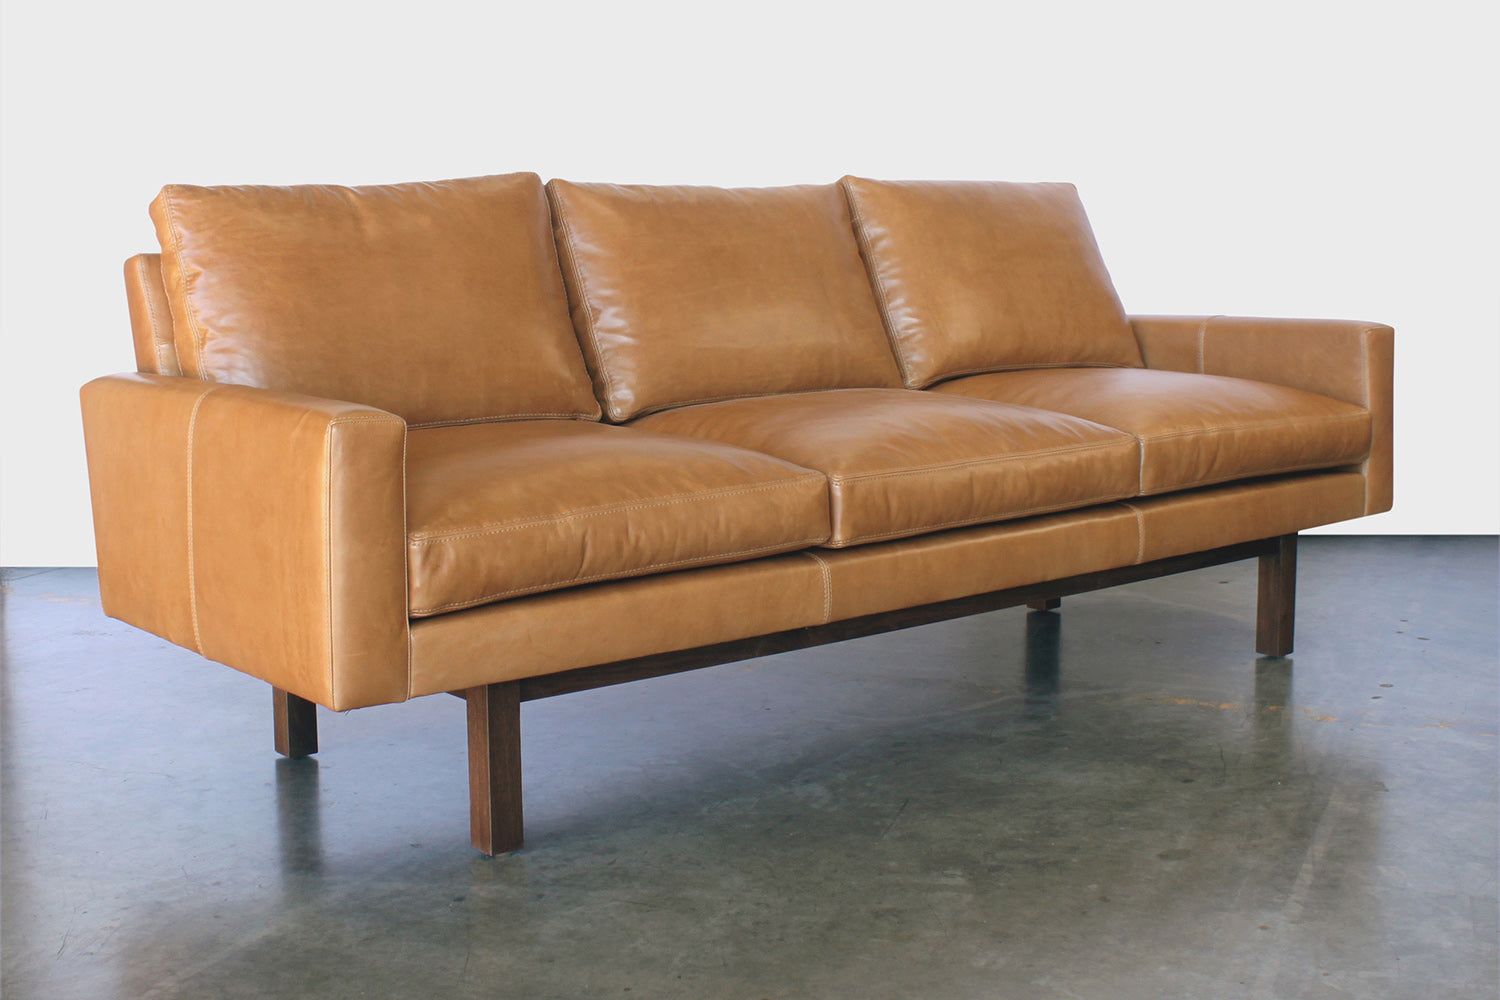 Standard Sofa (Staging)